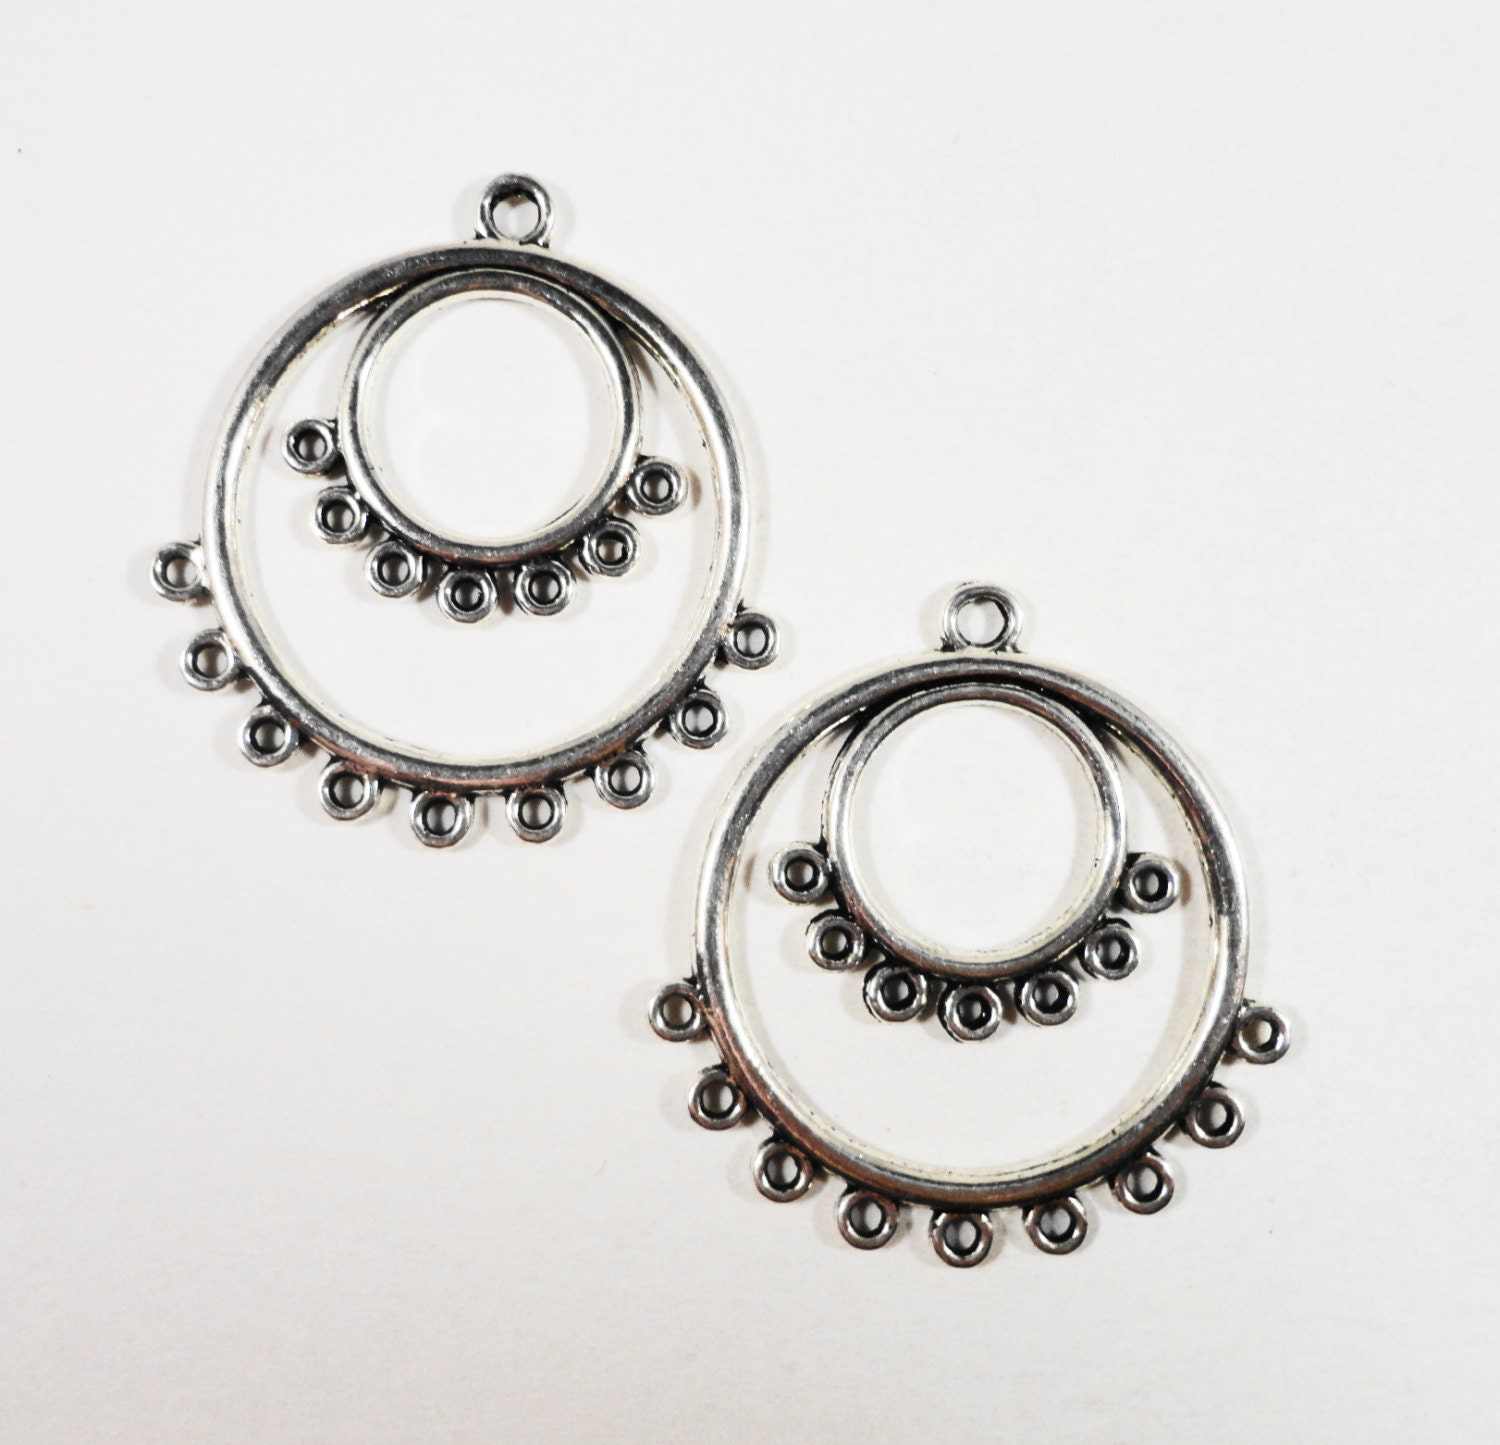 Hoop earring connectors 36x34mm antique silver chandelier earring hoop earring connectors 36x34mm antique silver chandelier earring findings connector findings connector pendants jewelry findings 4pcs arubaitofo Image collections